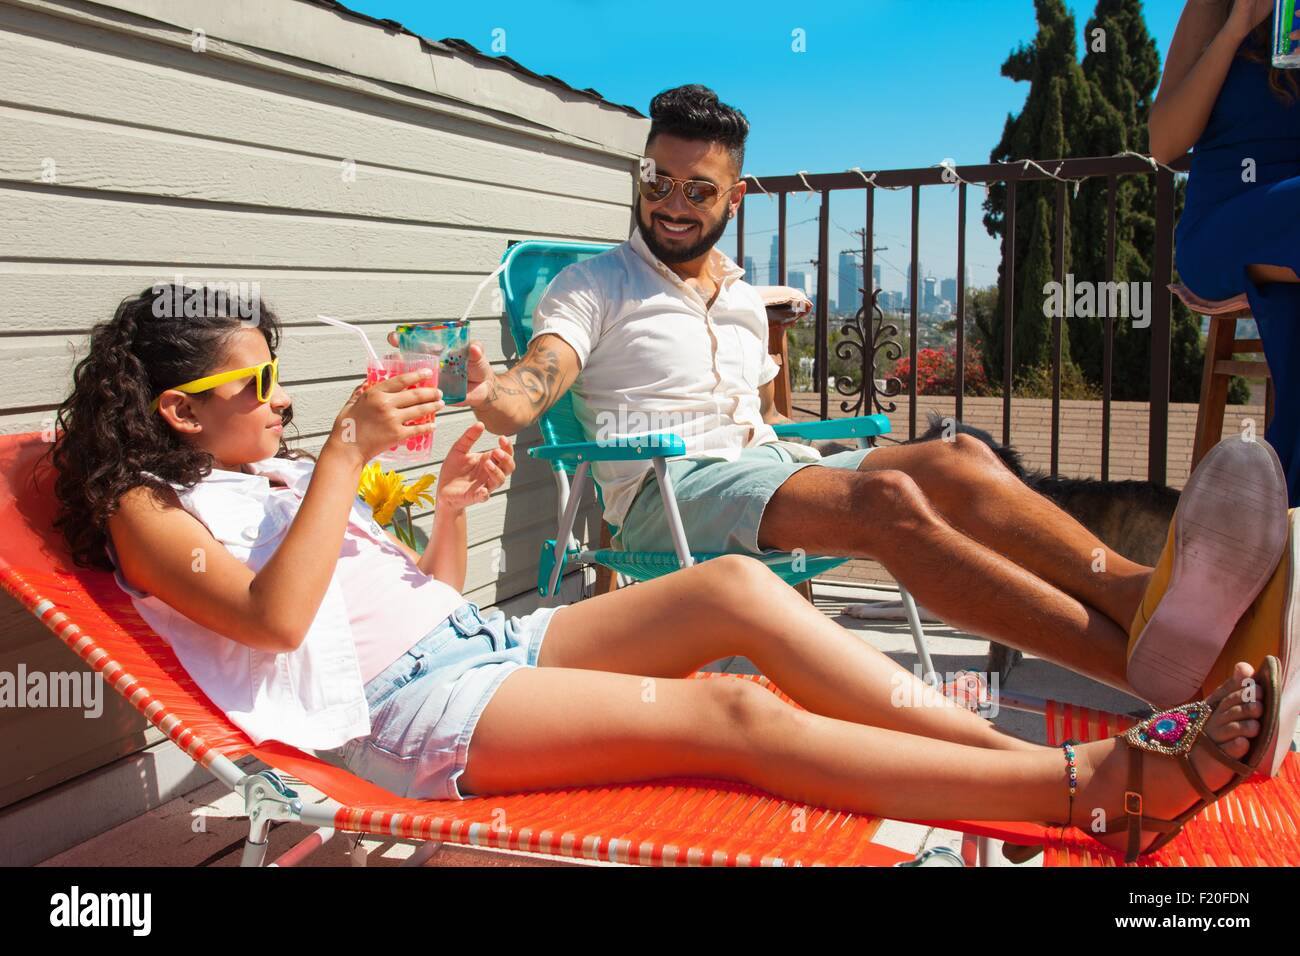 Girl and her father toasting with juice drink on patio - Stock Image